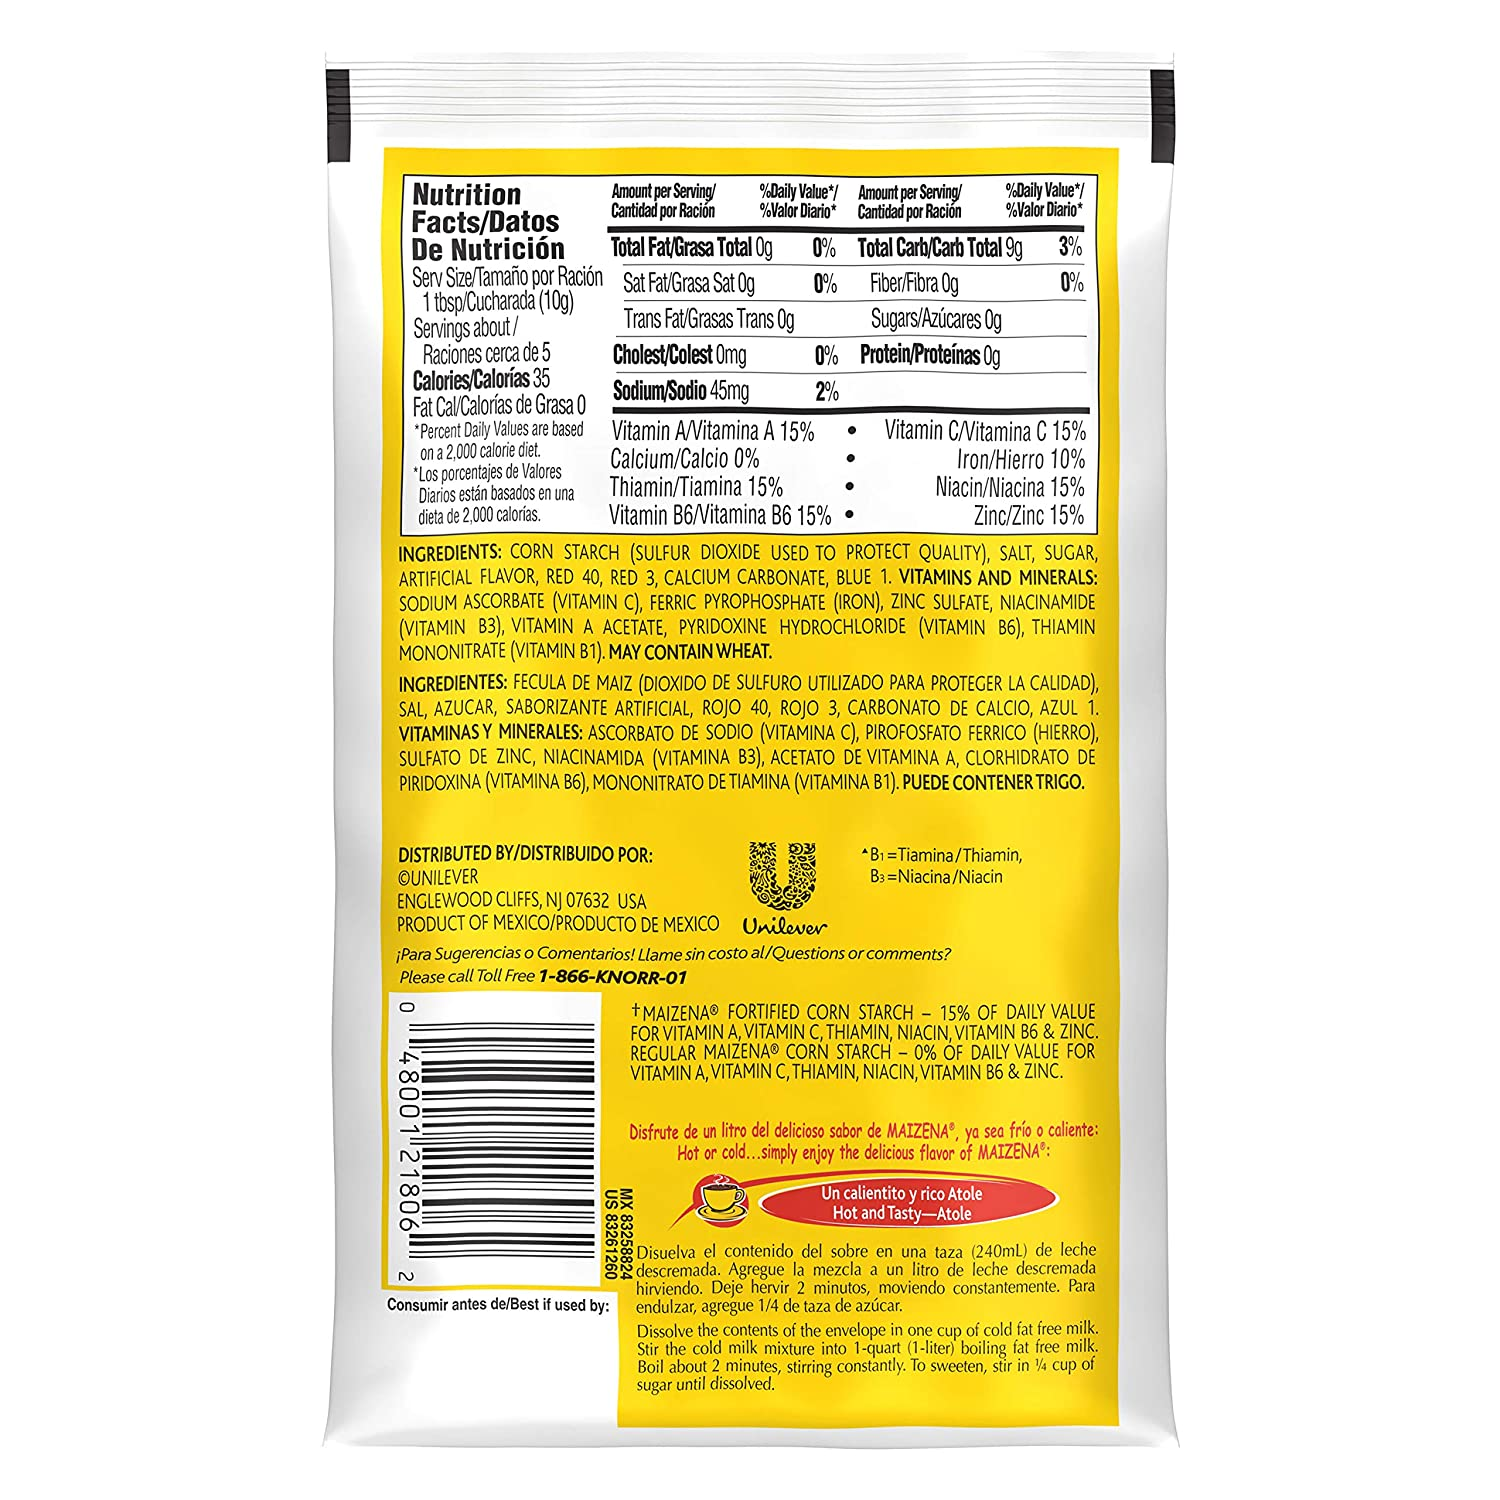 Amazon.com : Knorr Maizena Atole, Vanilla 1.6 oz, Pack of 48 : Powdered Drink Mixes : Grocery & Gourmet Food